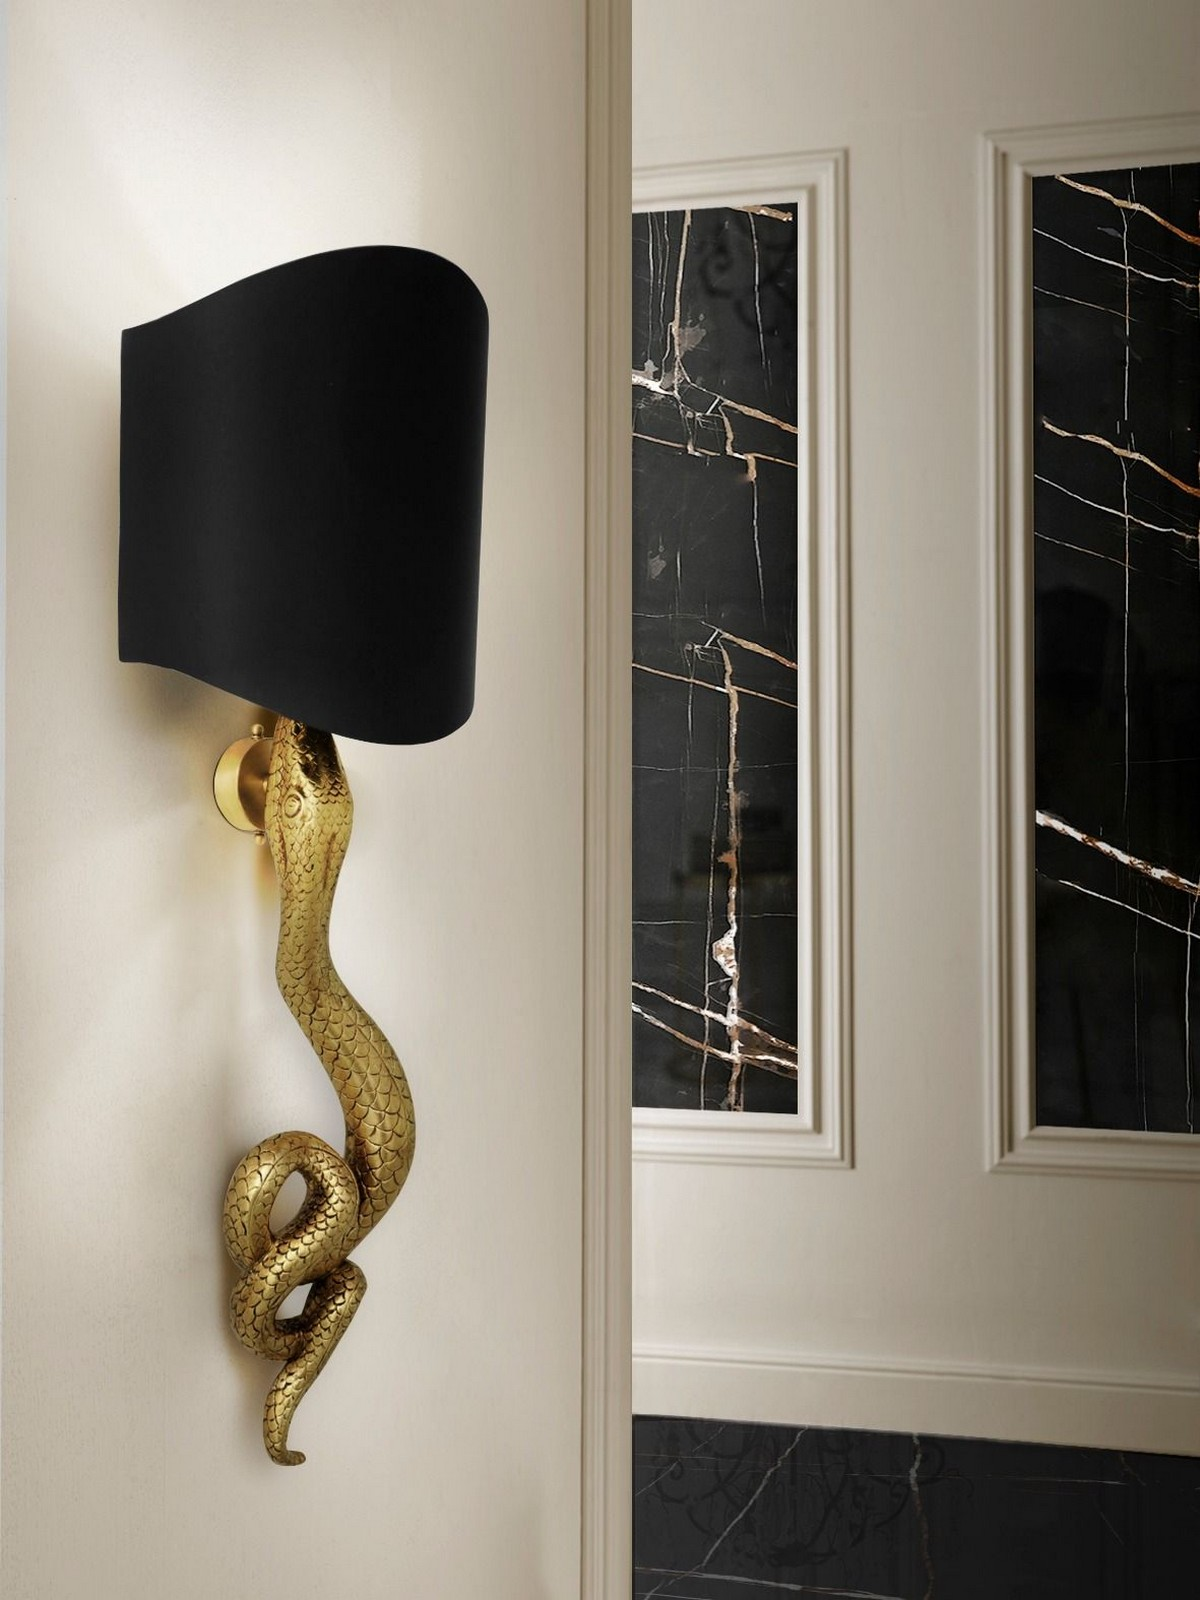 Exclusive Lighting Designs You Will Love lighting Exclusive Lighting Designs You Will Love serpetine sconce